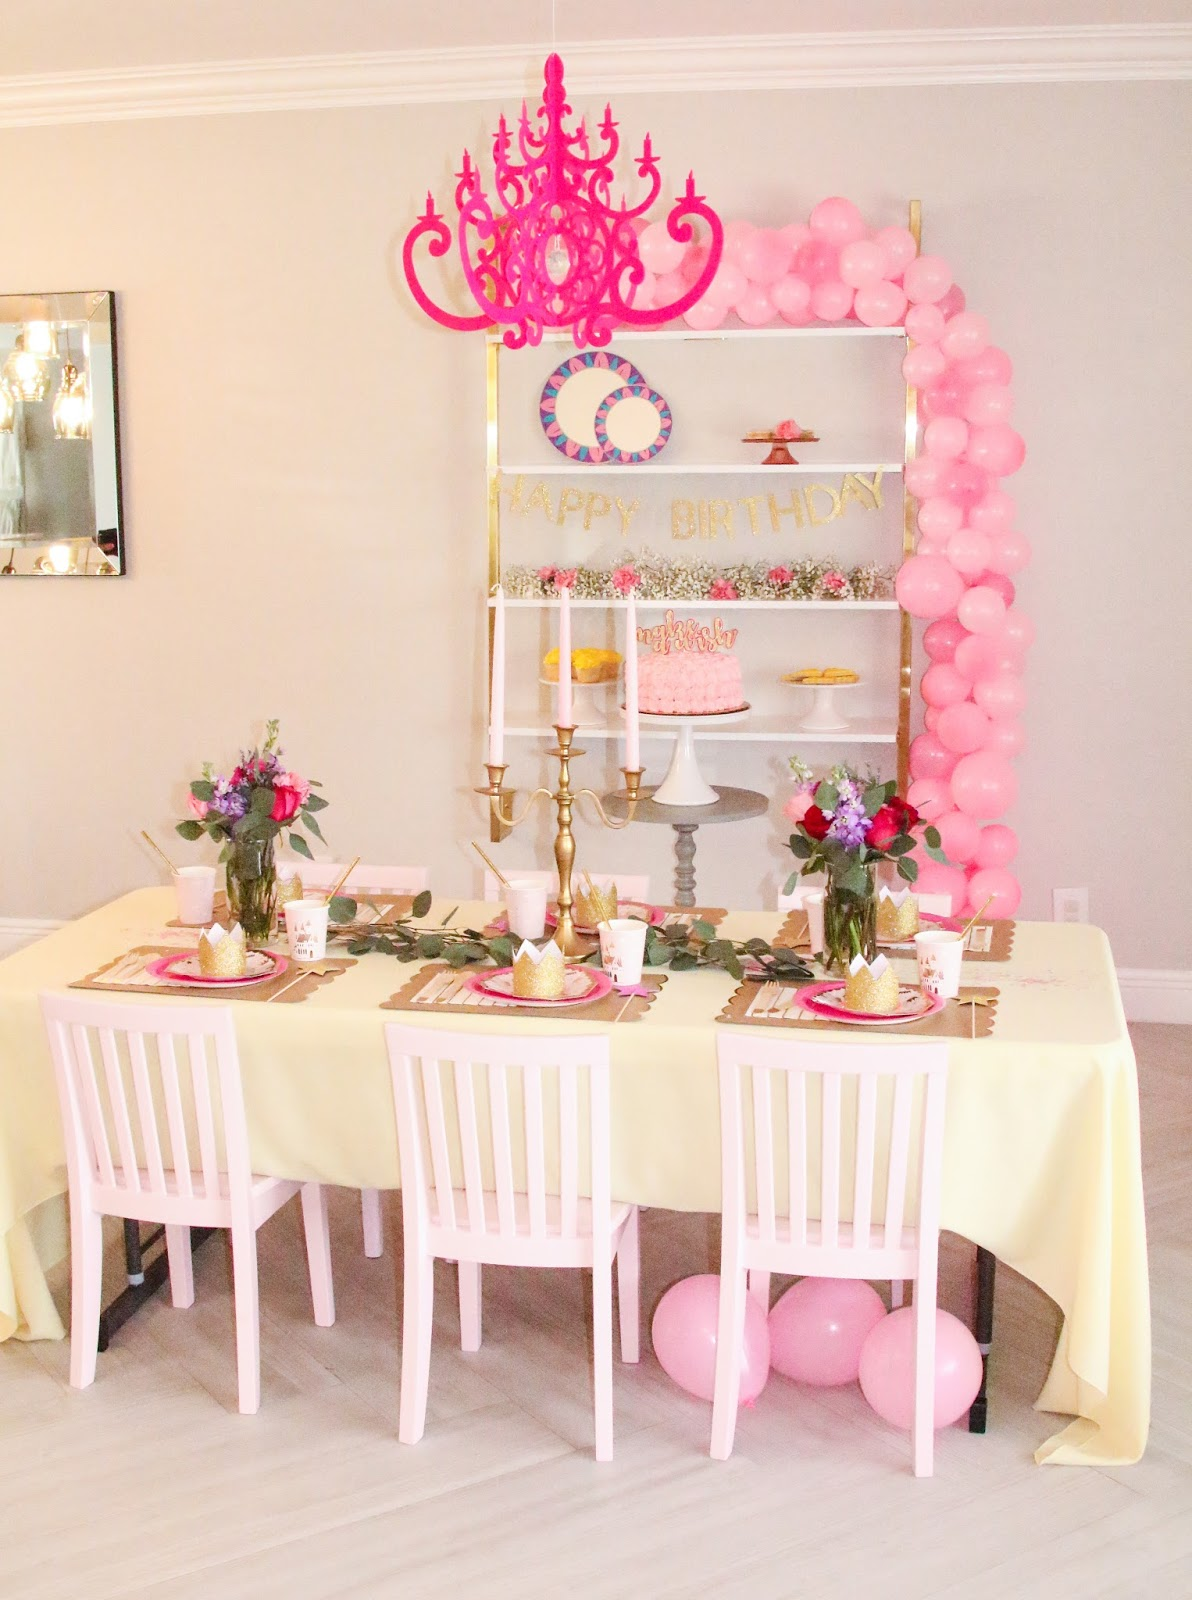 Beauty and the Beast Garden Party by popular party planning blogger Celebration Stylist